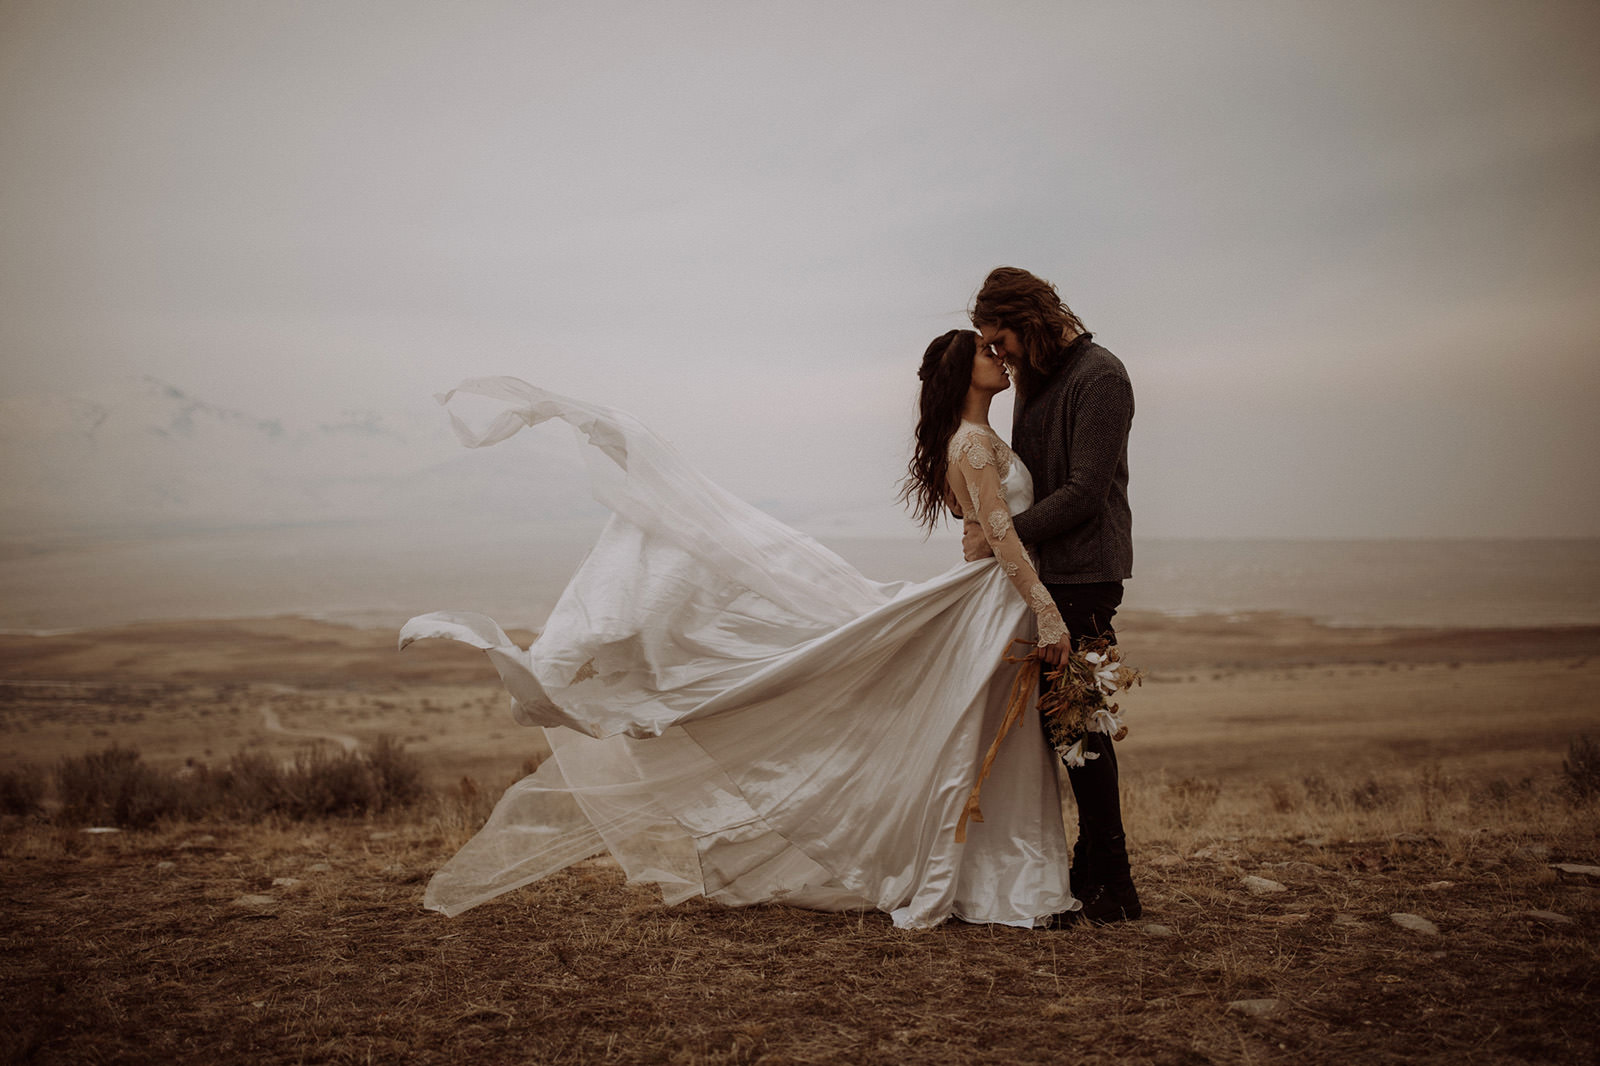 A wedding couple stands on a field on a windy day, and it looks like her dress is about to fly away.